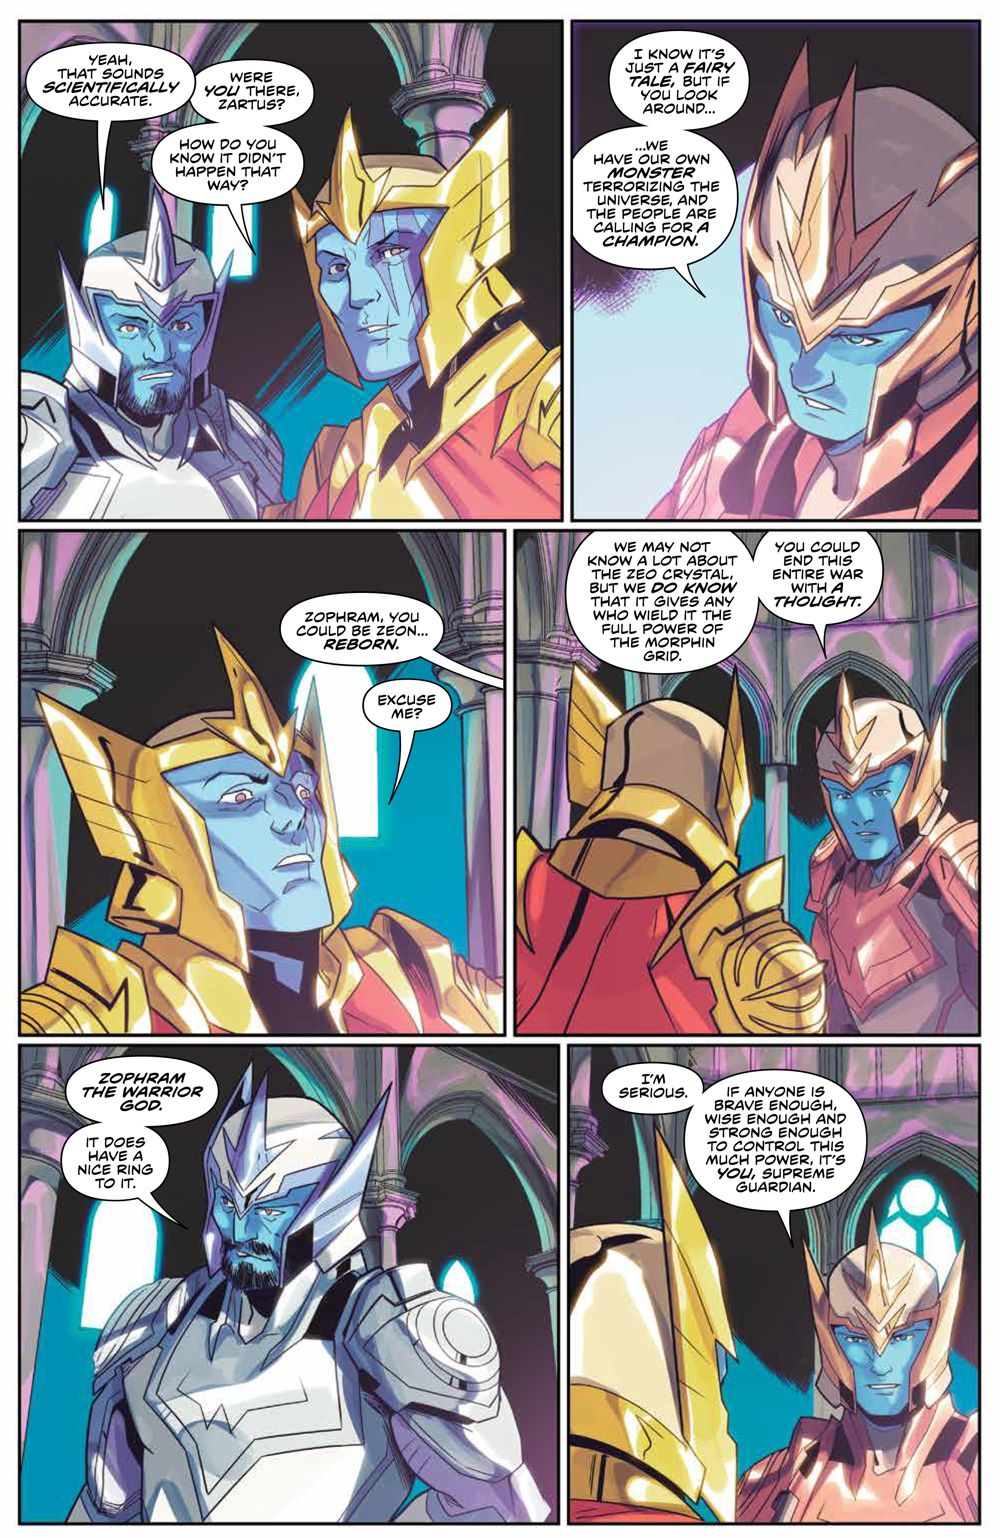 Mighty_Morphin_008_PRESS_5-1 ComicList Previews: MIGHTY MORPHIN #8